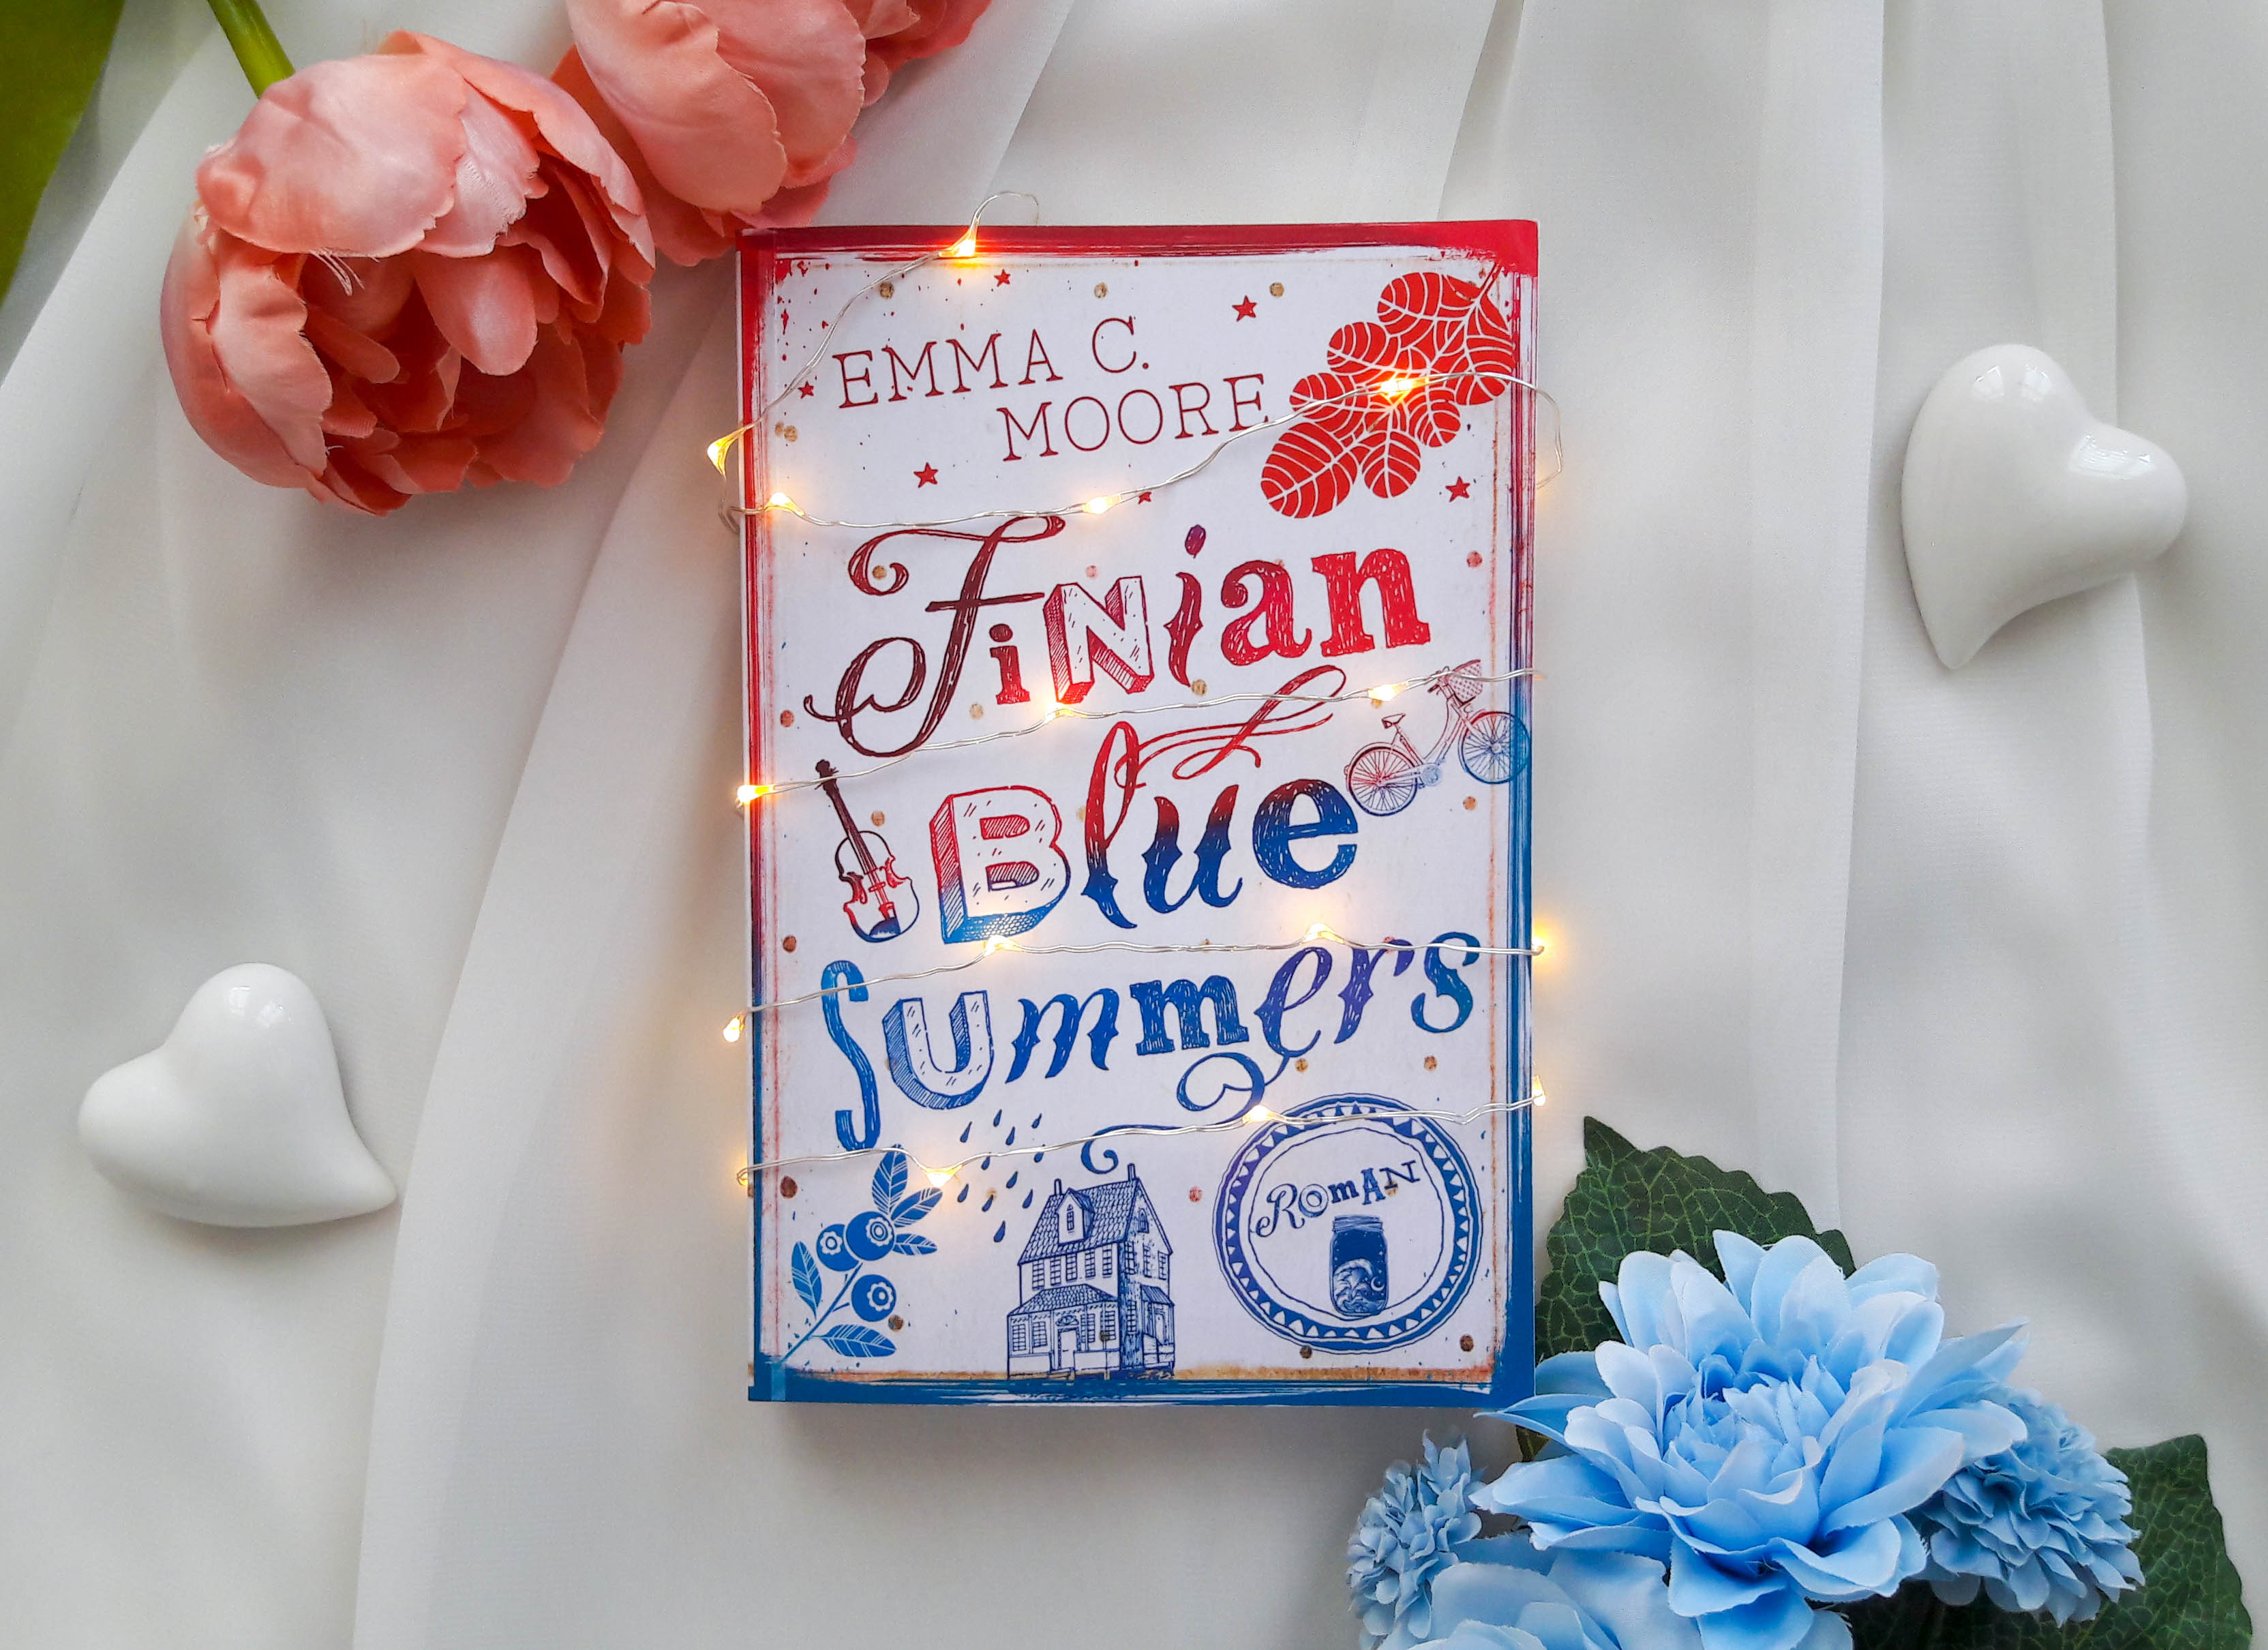 Finian Blue Summers (Say Something) – Emma C. Moore graphic